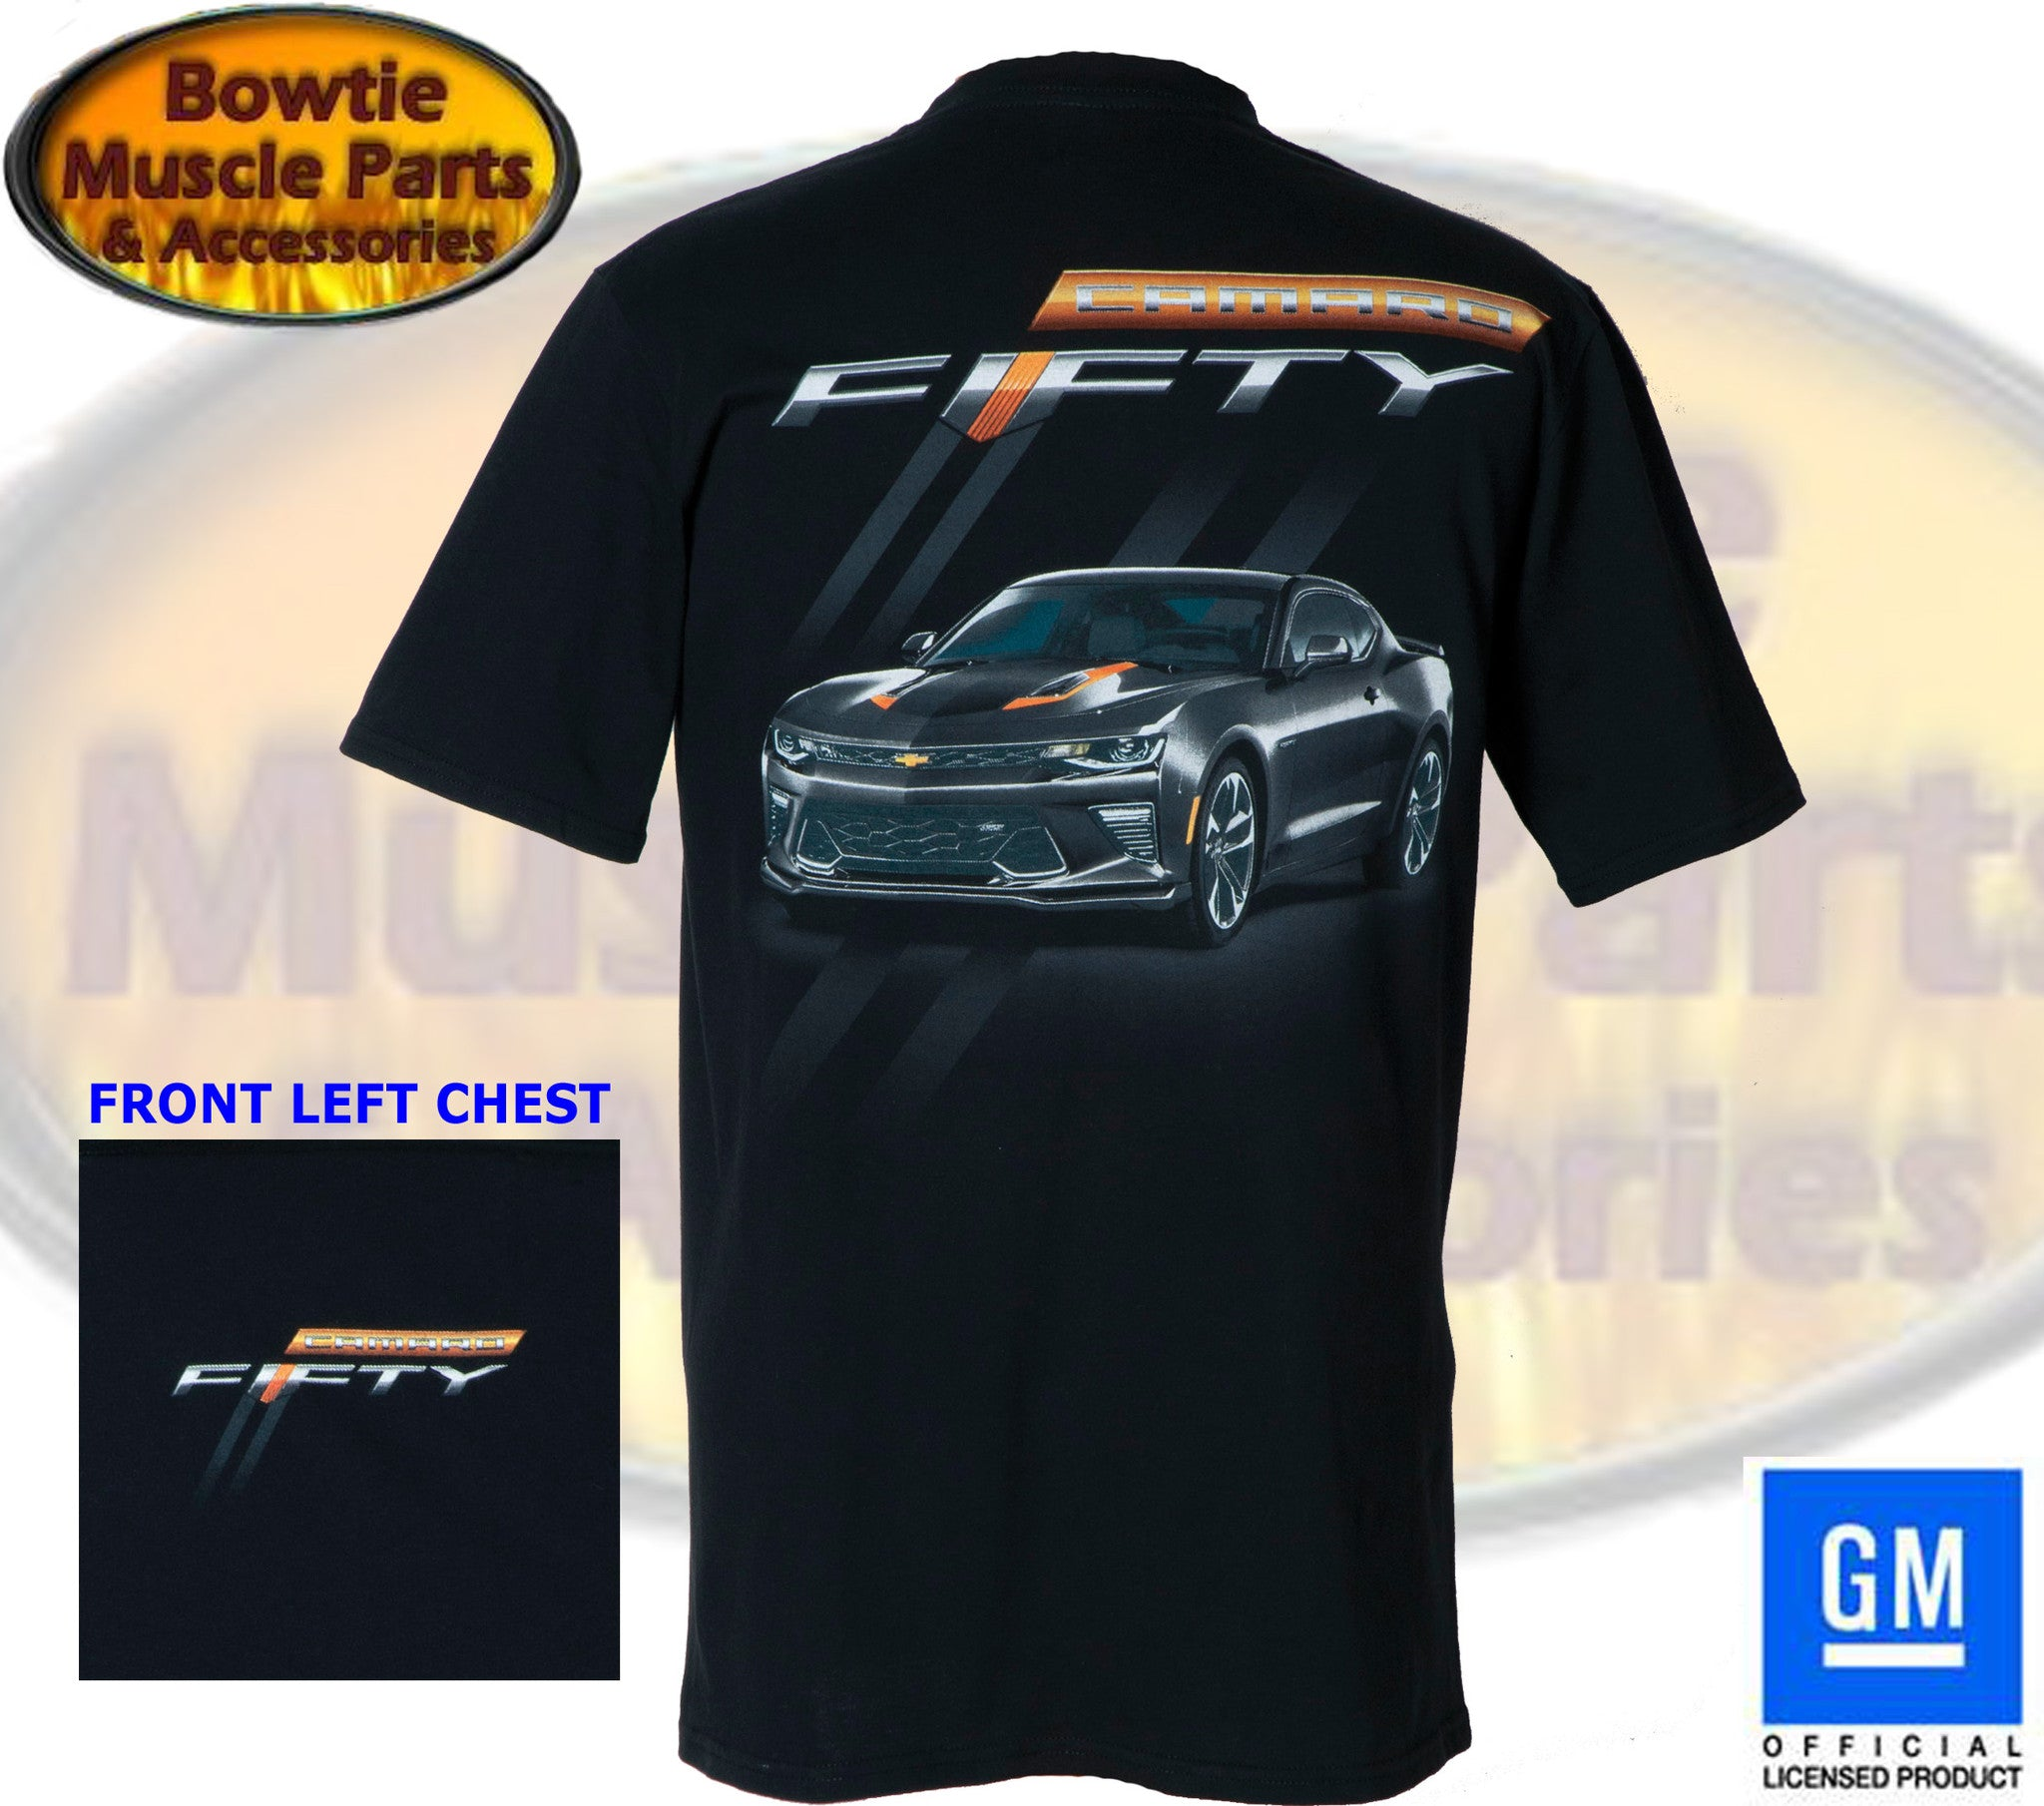 Camaro Fifty Anniversary T-Shirt